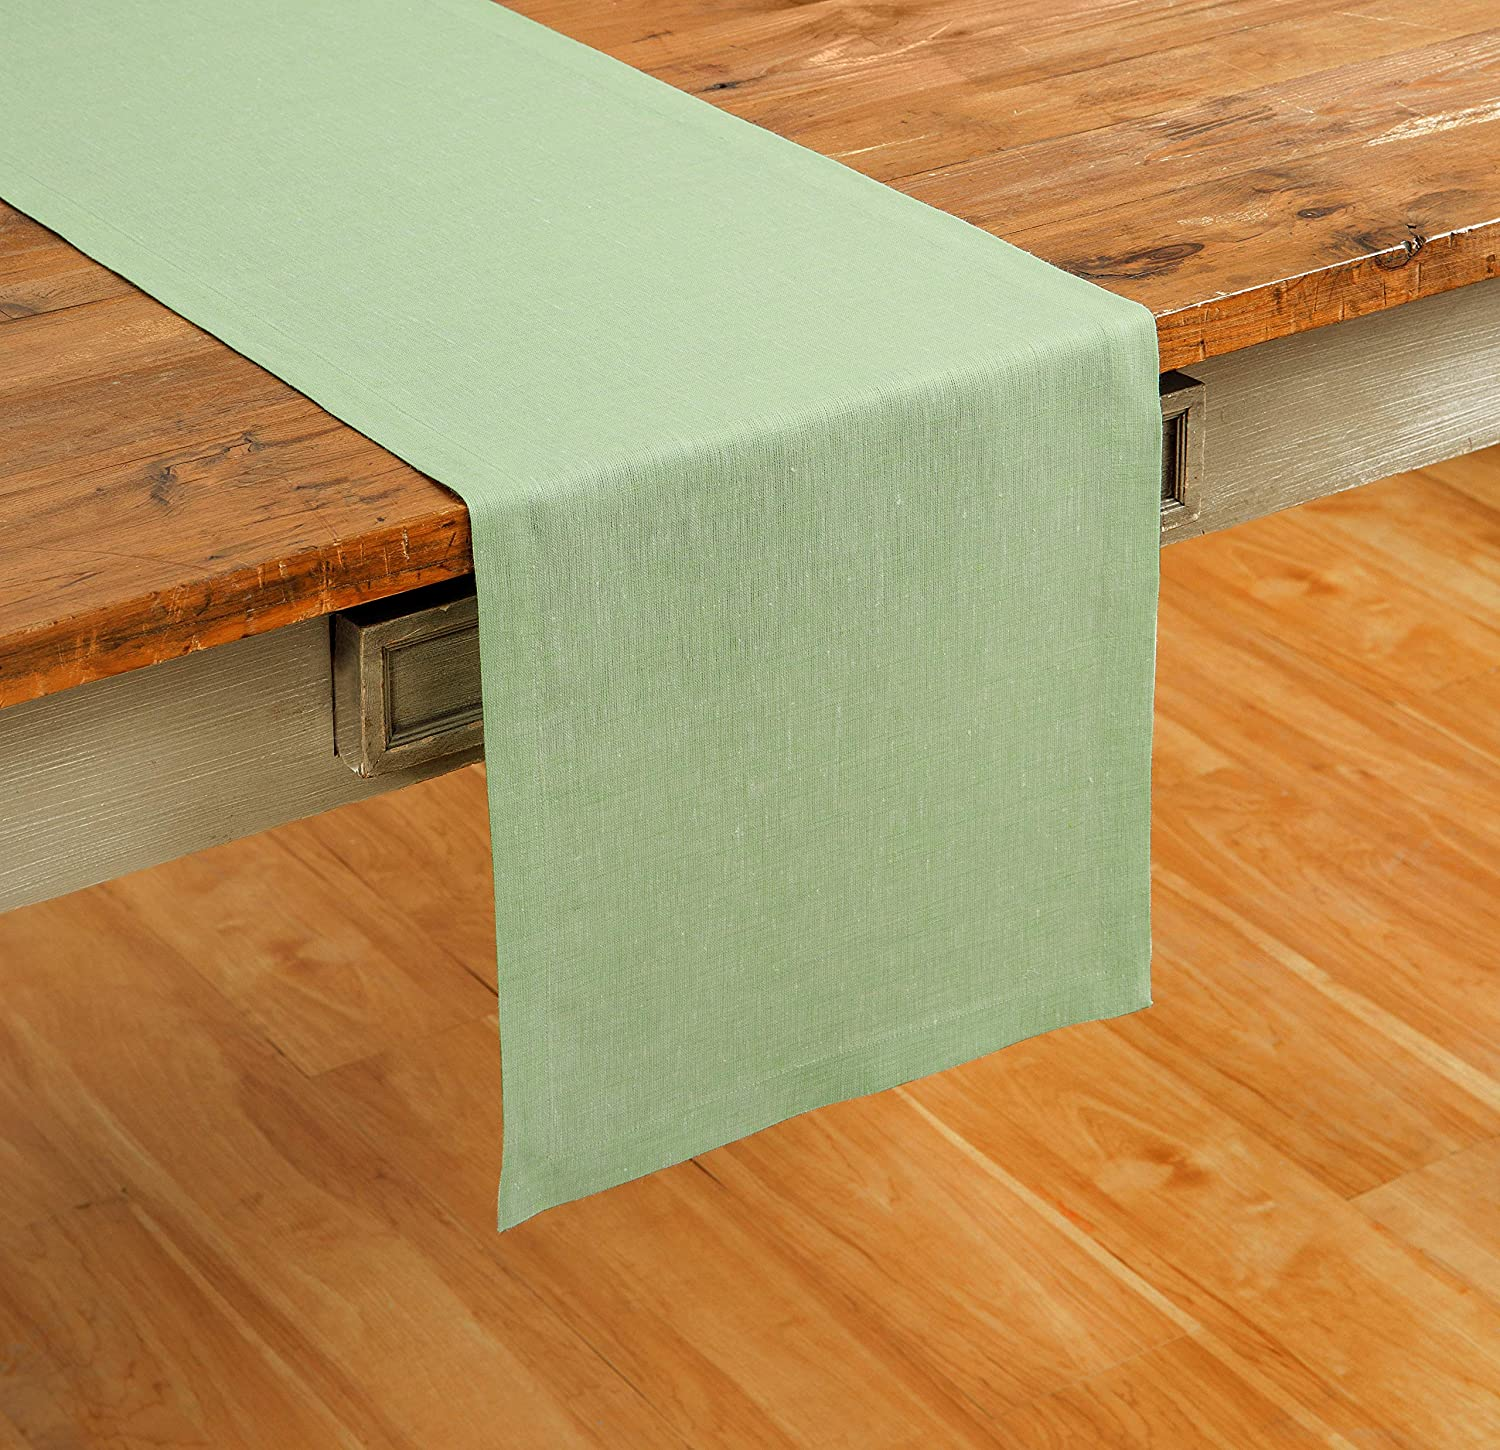 Solino Home 100% Pure Linen Table Runner – 14 x 60 Inch Athena, Handcrafted from European Flax, Natural Fabric Runner – Green